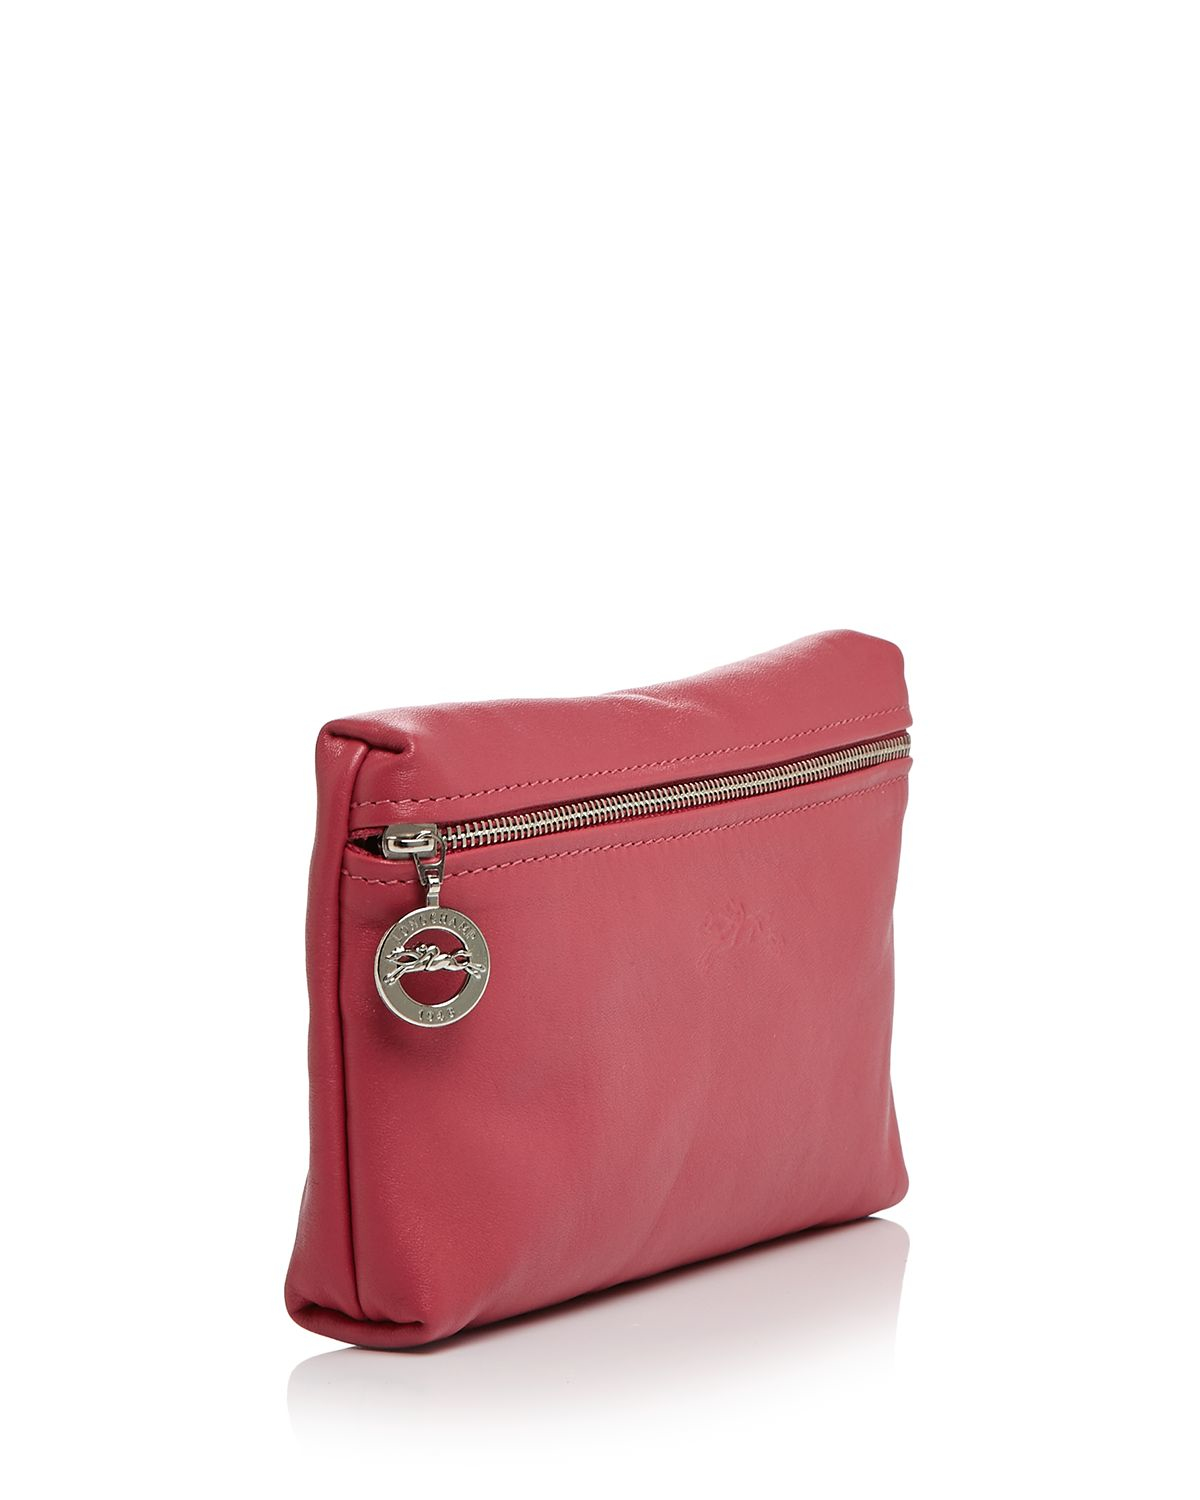 fb85d16484 Lyst - Longchamp Le Pliage Cosmetic Case in Red